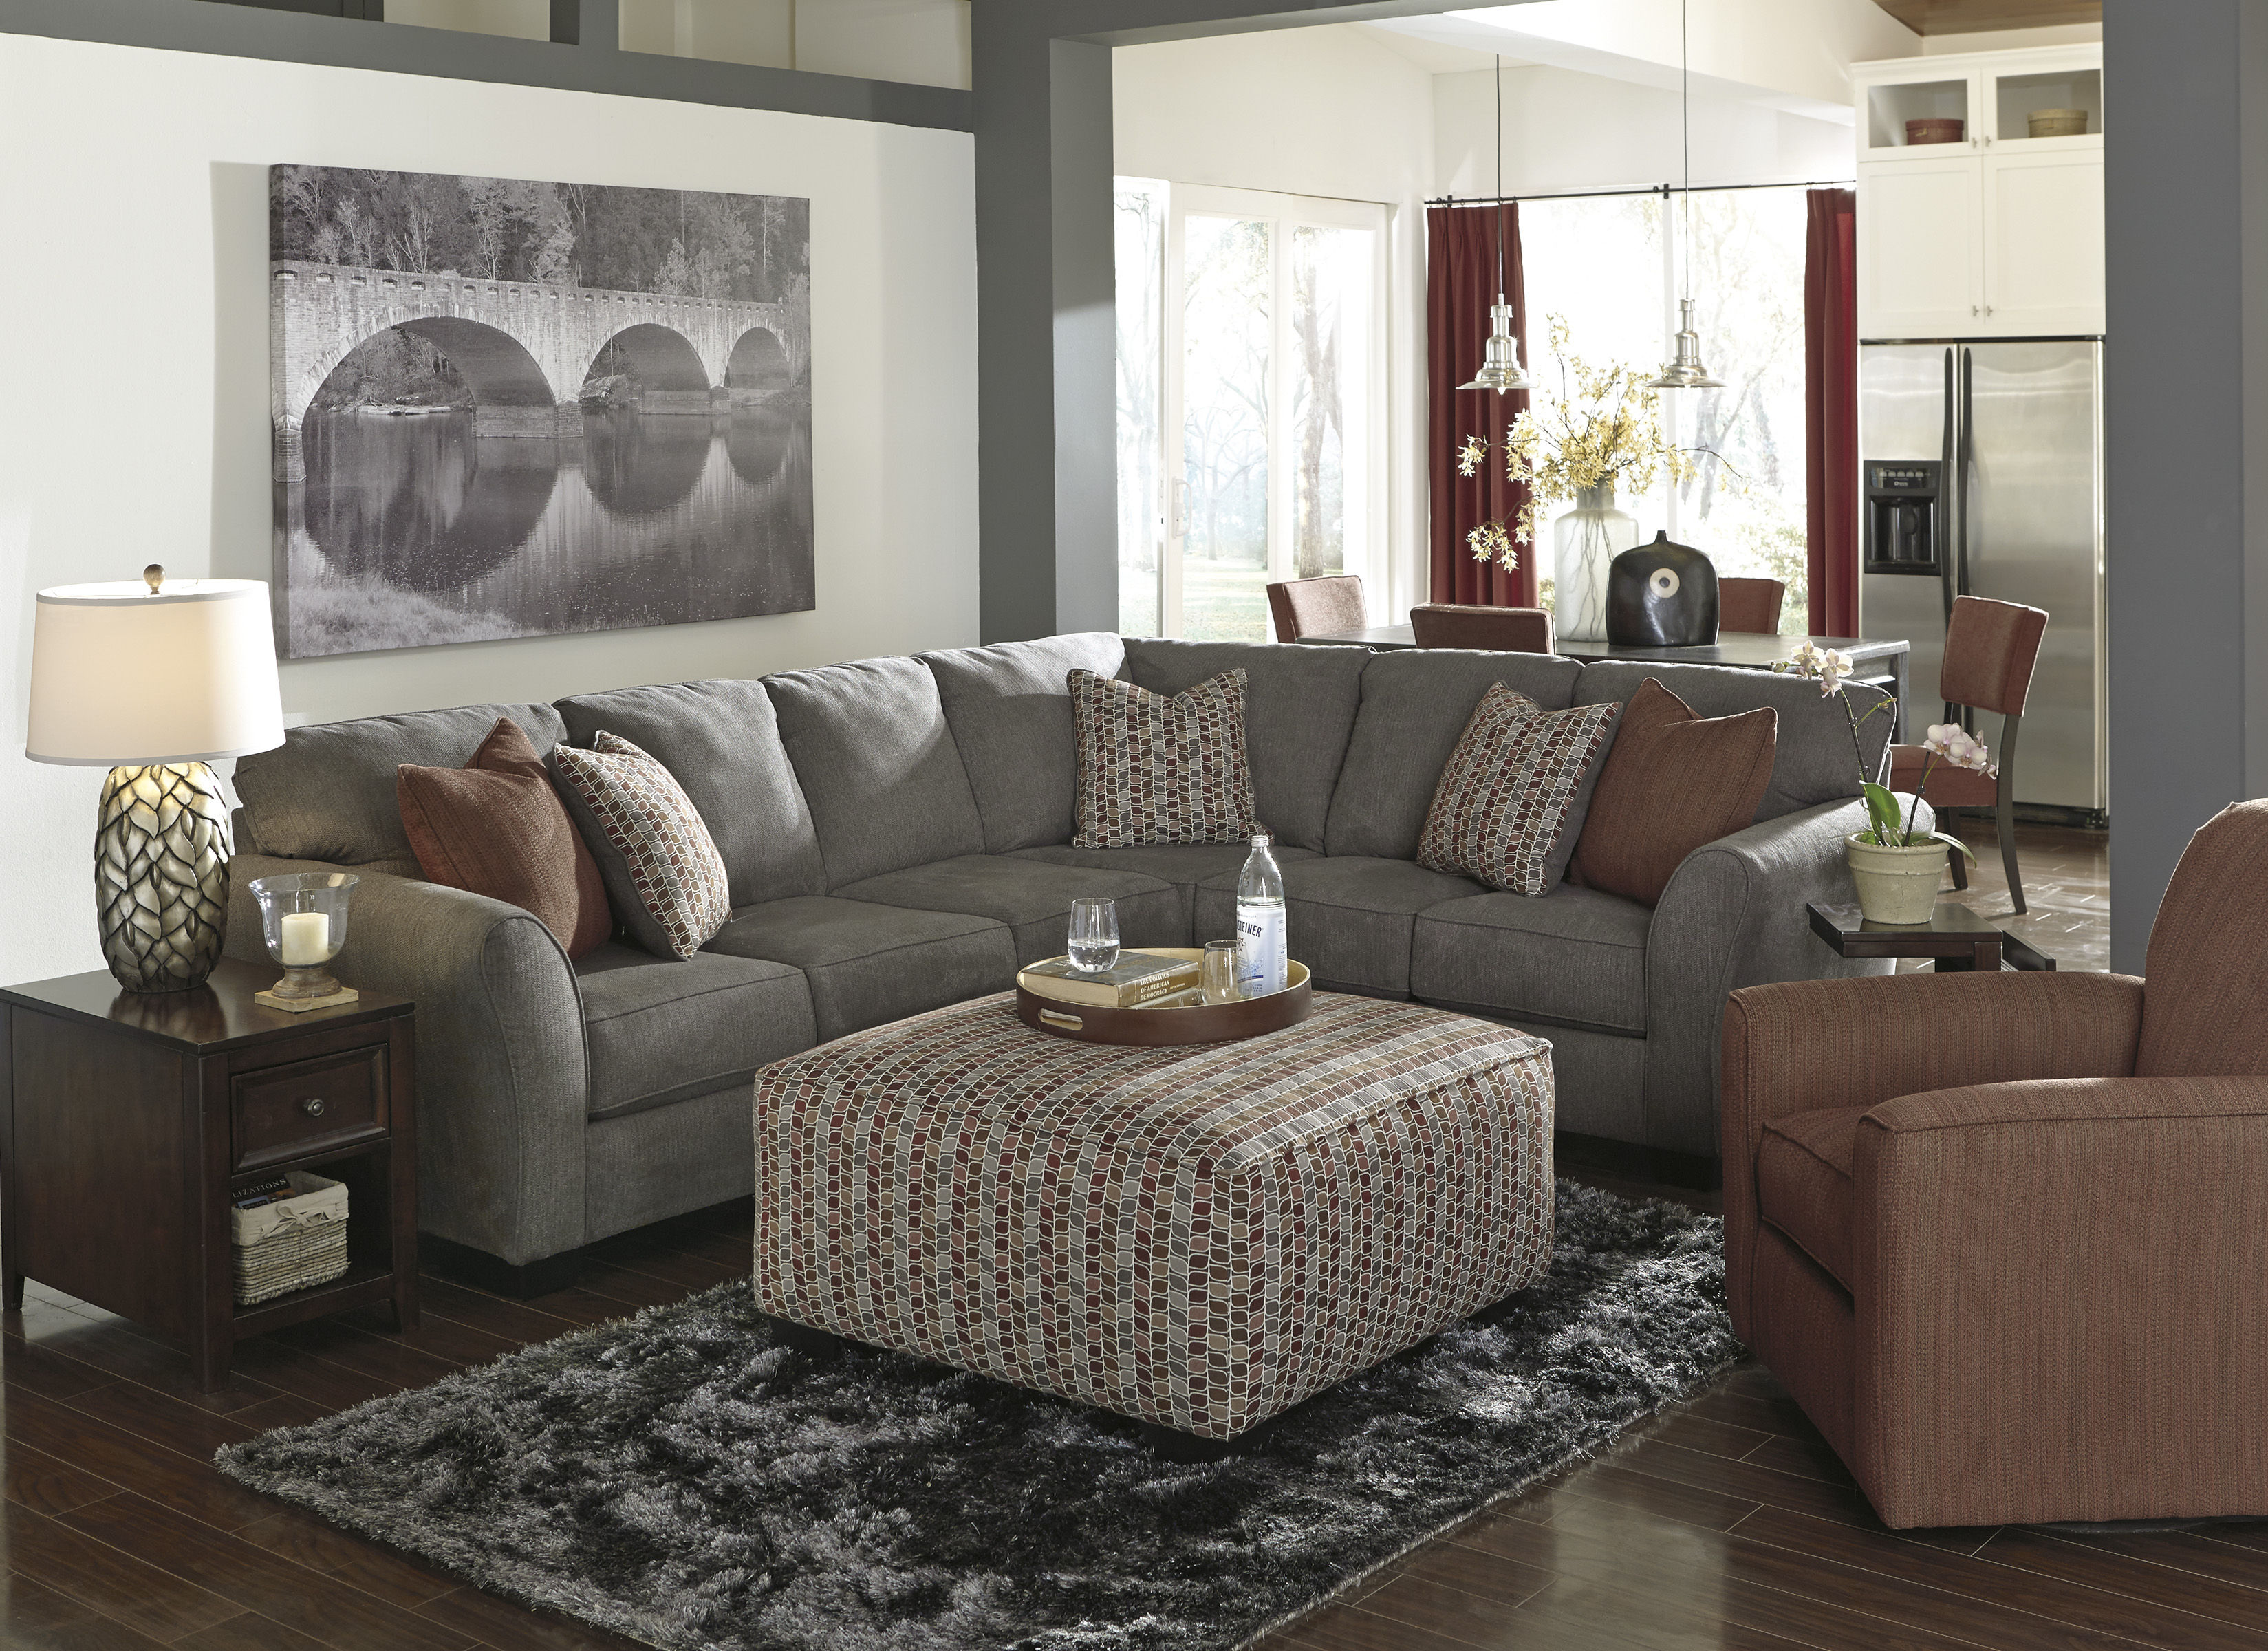 Doralin contemporary steel fabric living room set living for Best living room set deals